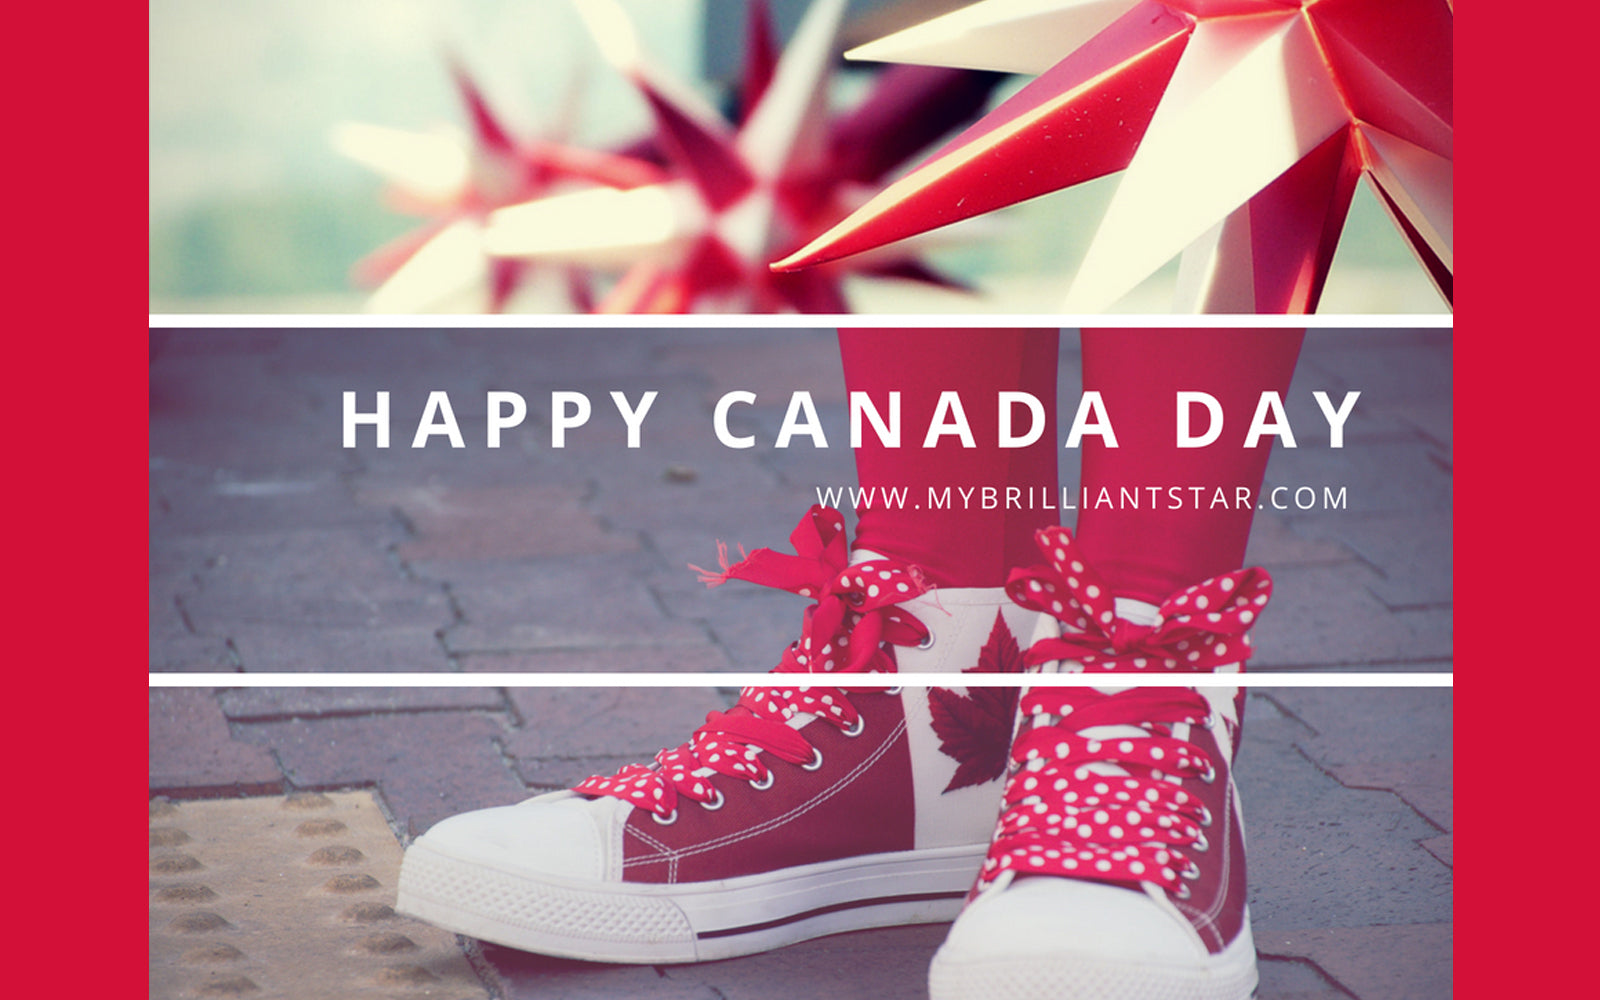 CANADA DAY AND MORE!